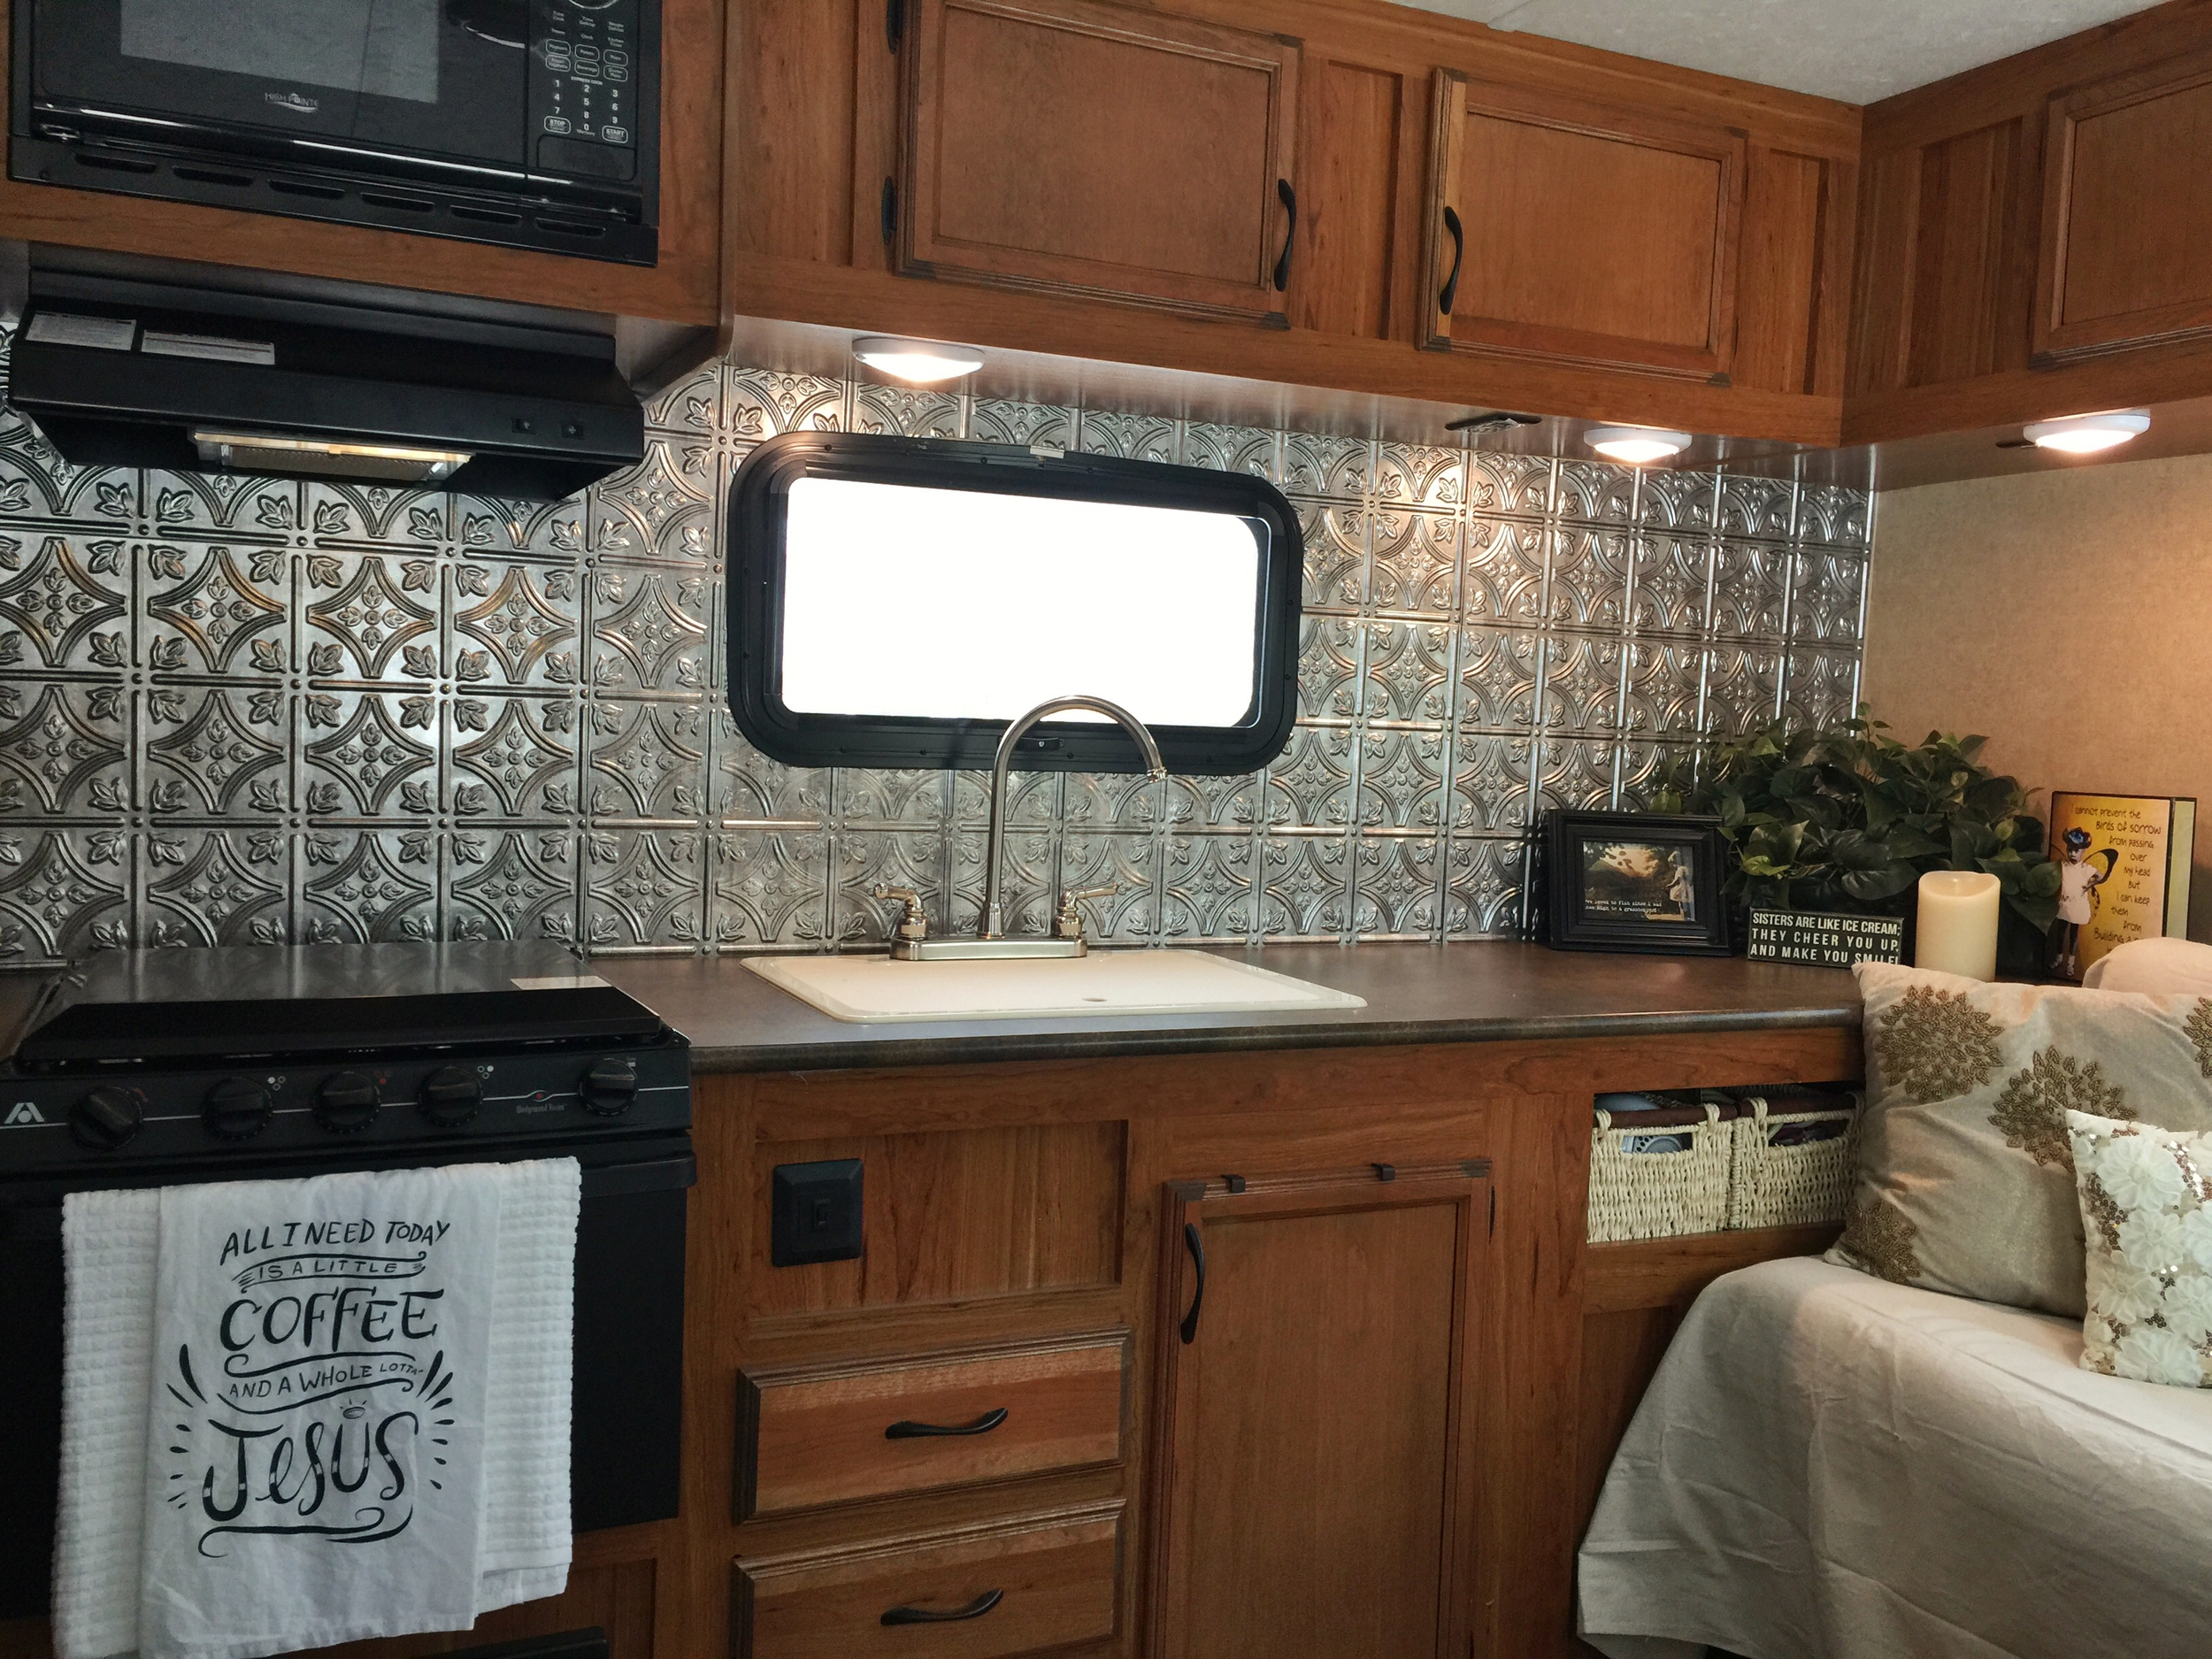 Ginny recently re-did the backsplash in her new trailer - it looks great!